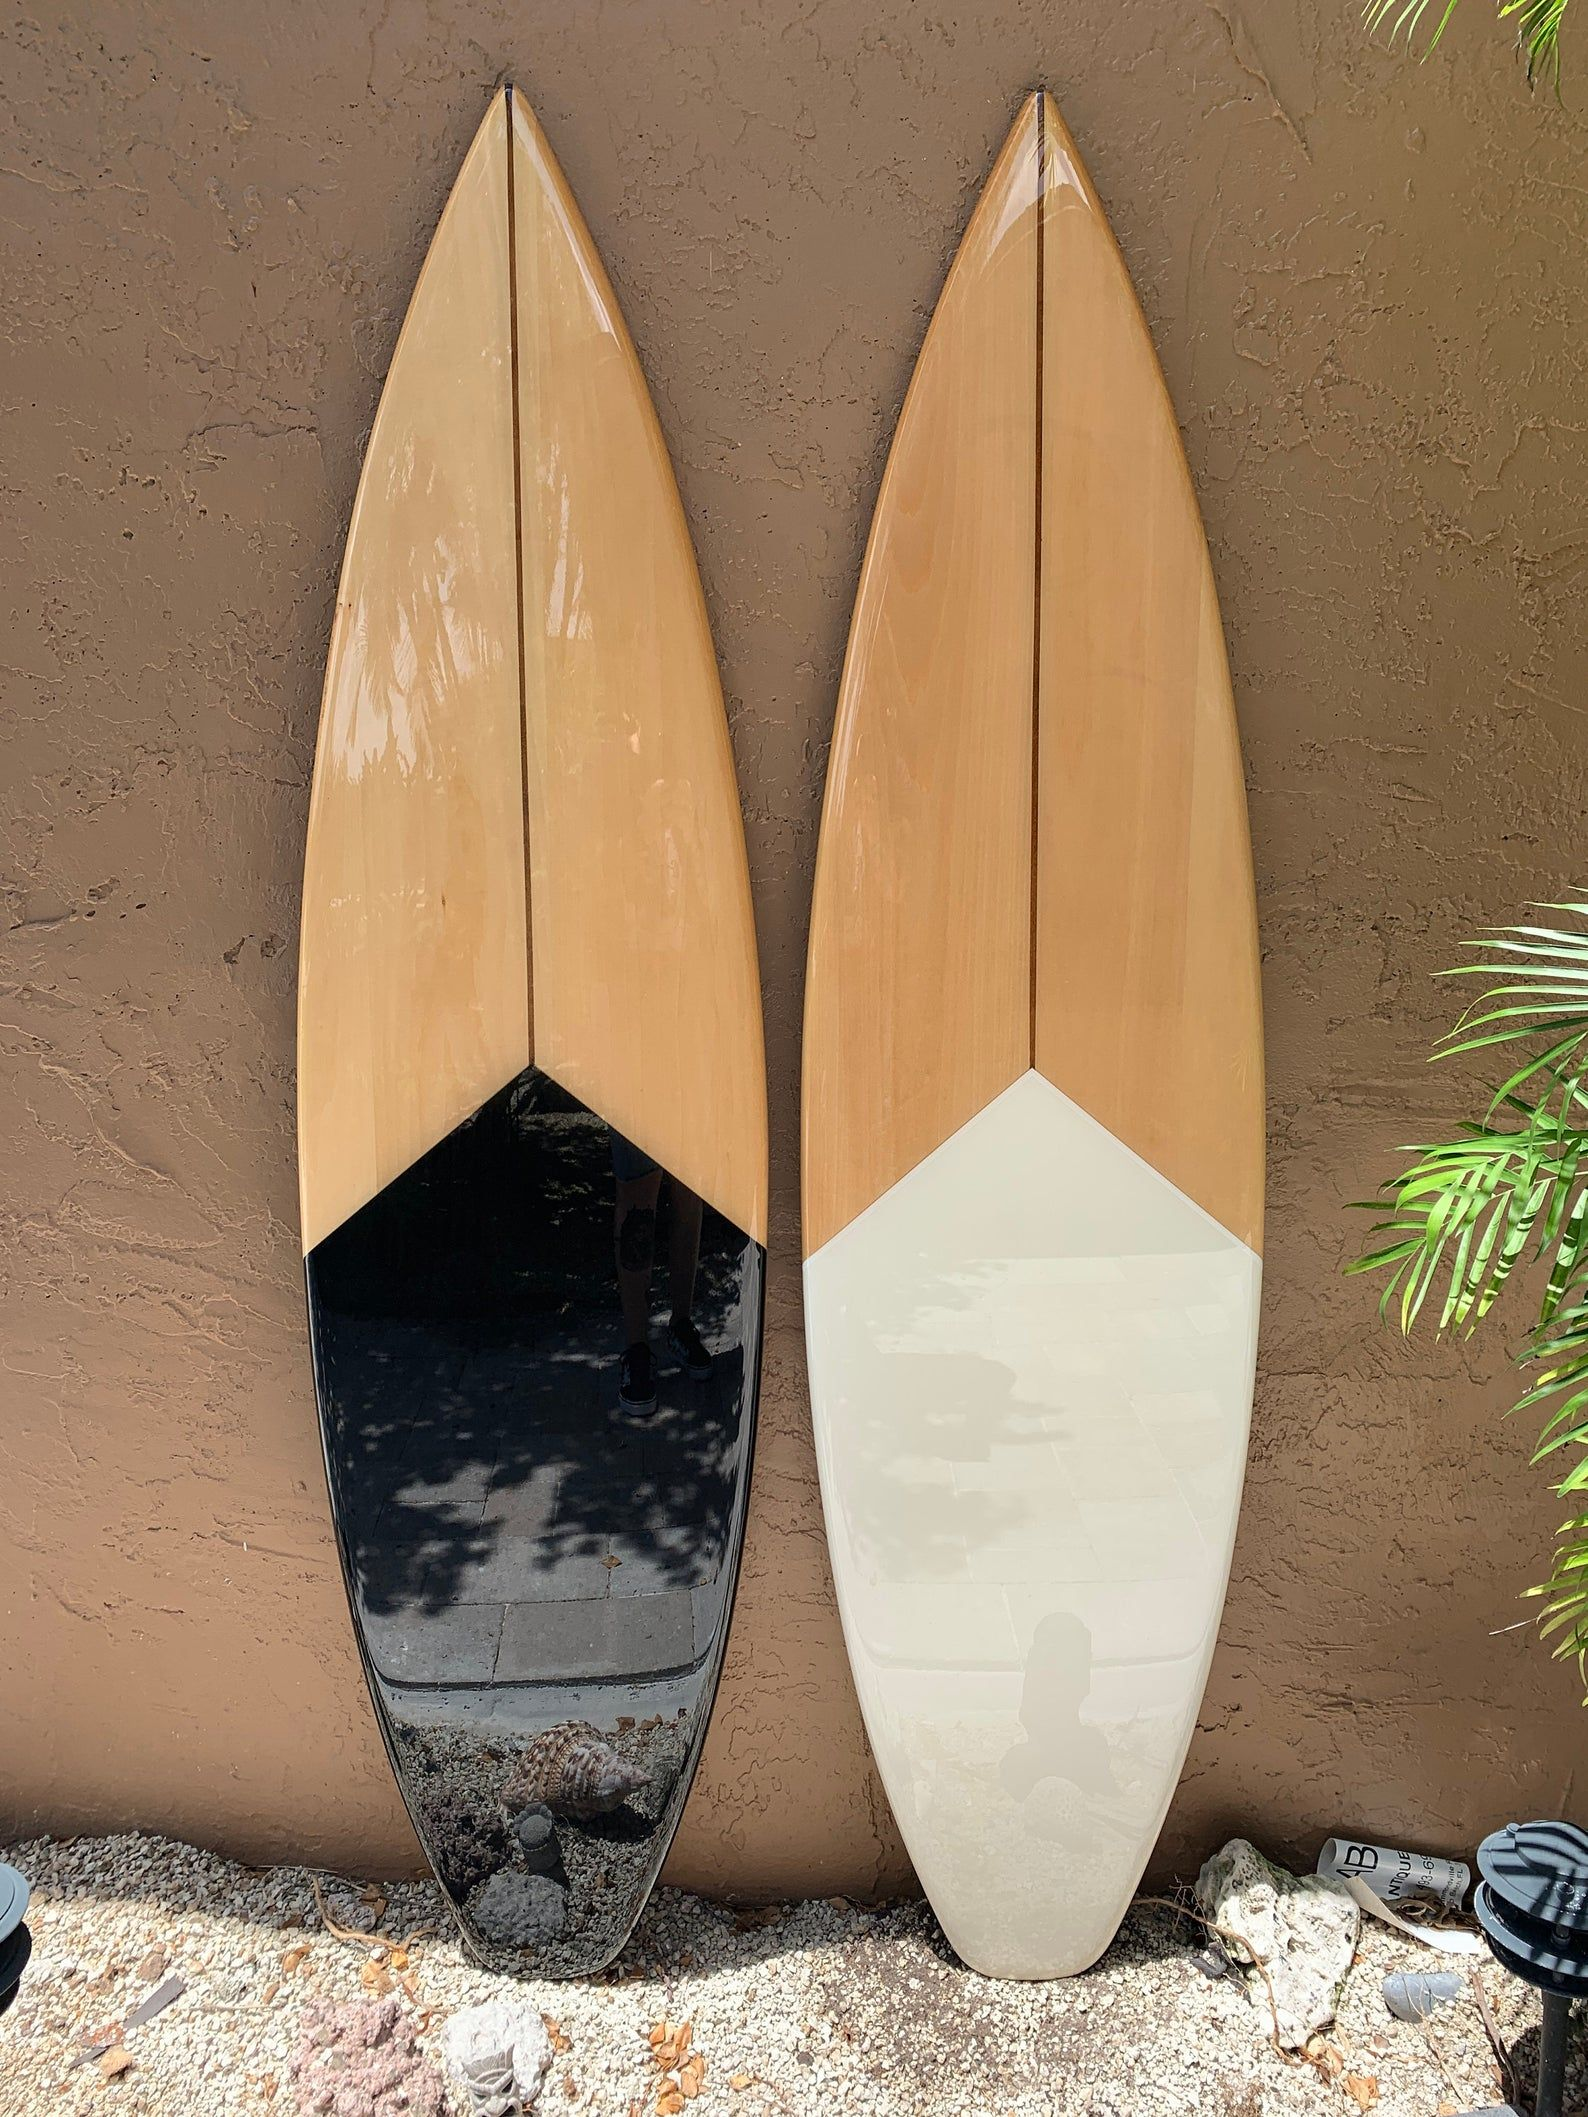 Decorative Wooden Surfboard Wall Art Modern Art Hawaiian Etsy Surfboard Wall Art Surfboard Wall Wooden Surfboard